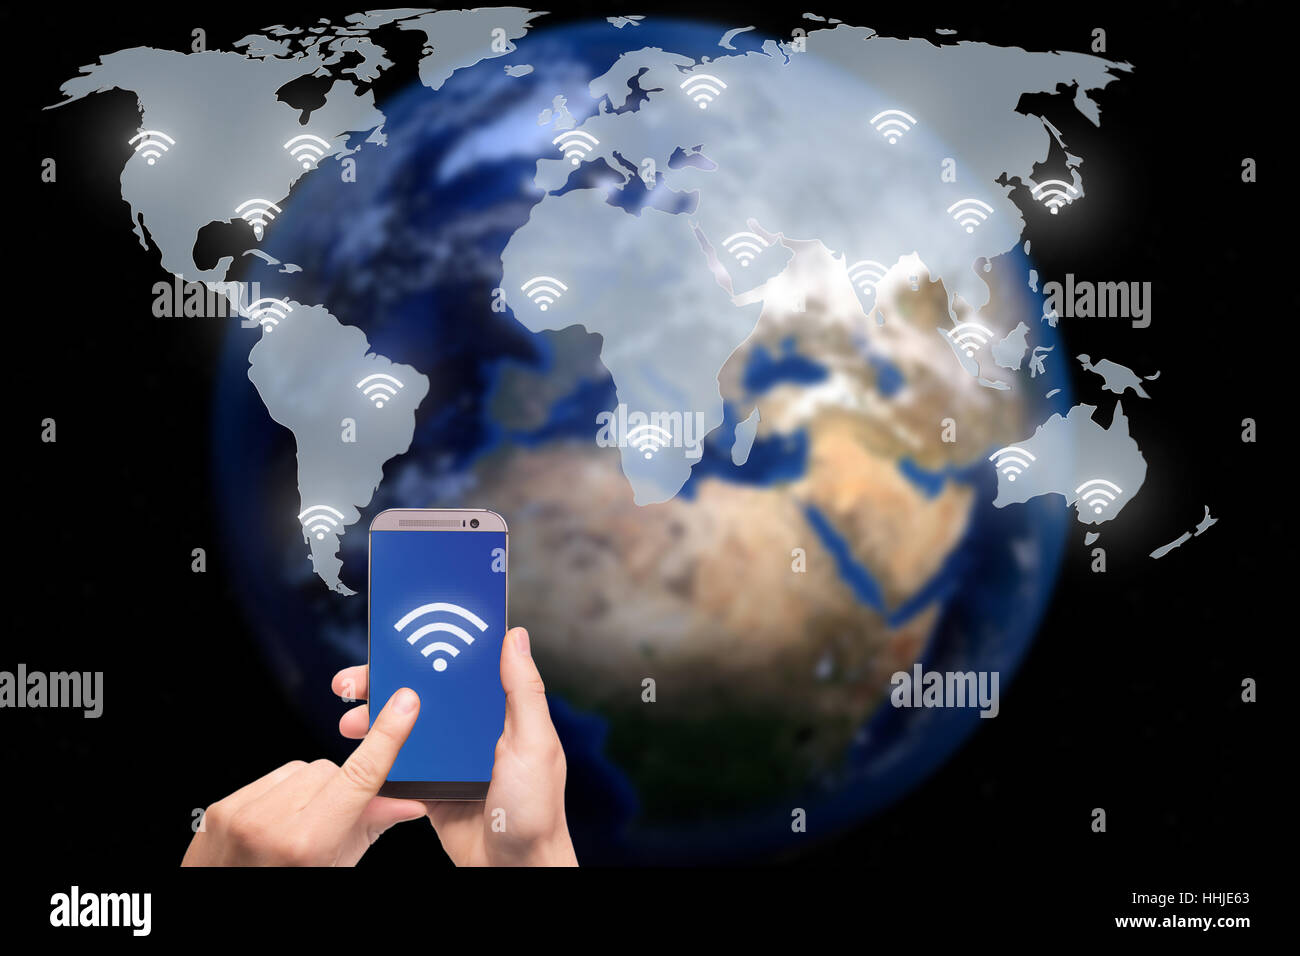 Hand holding smart phone on world map network and wireless communication network, abstract image visual, internet - Stock Image